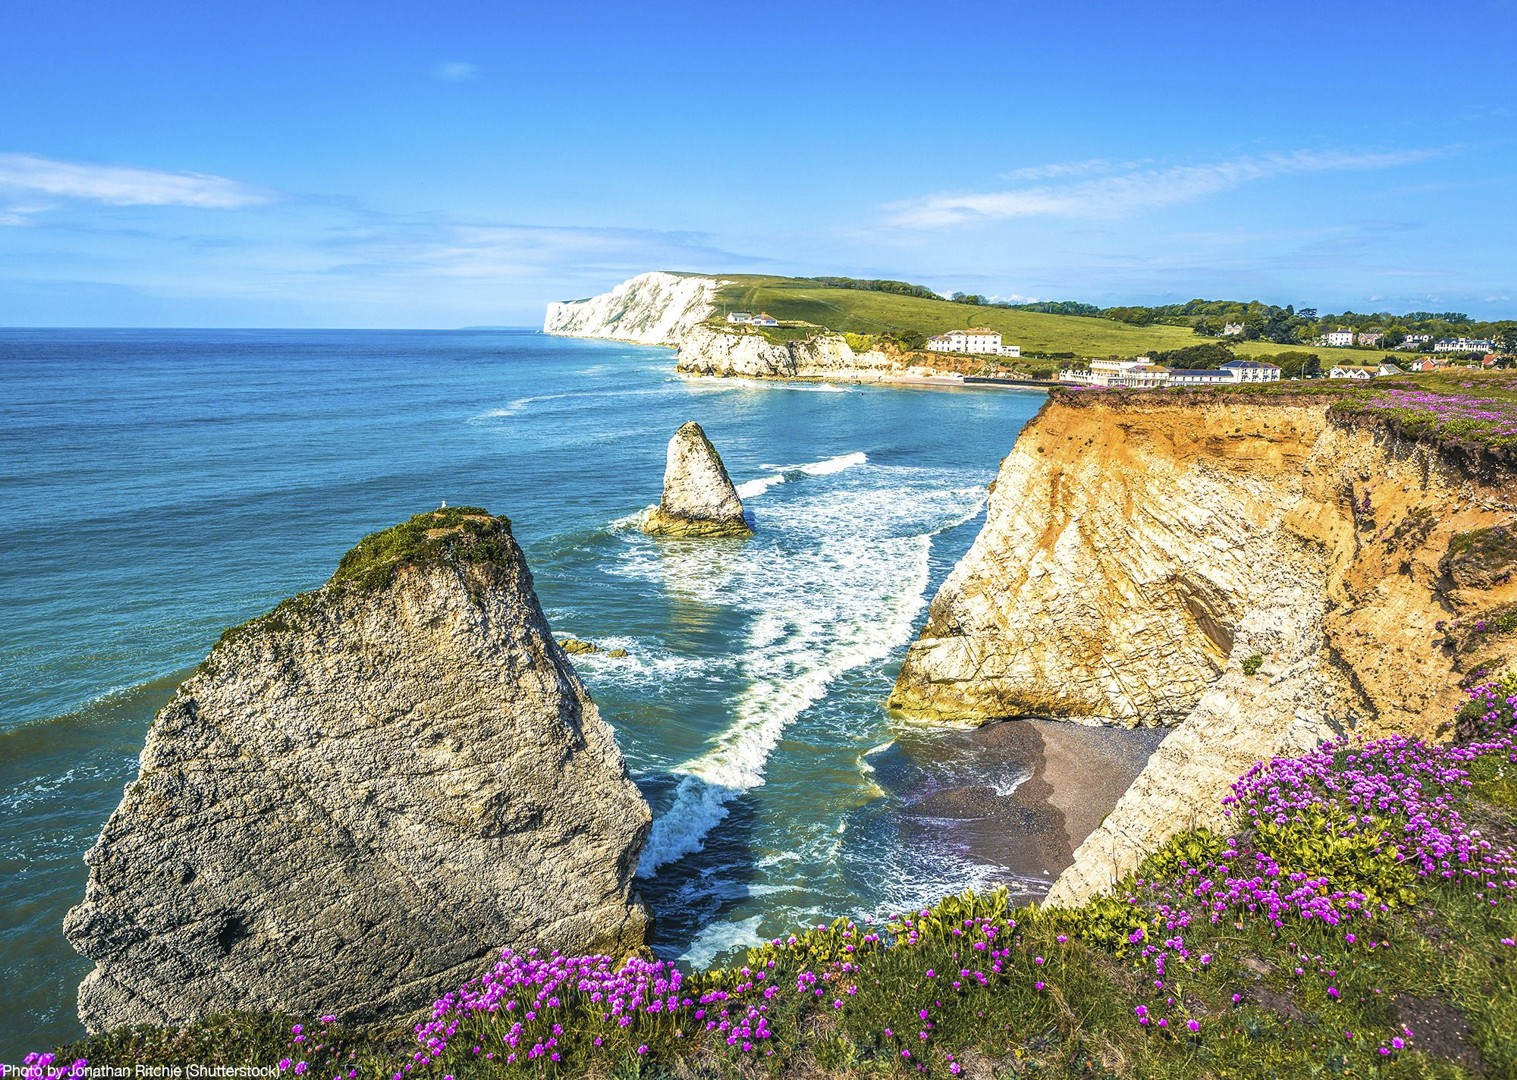 freshwater-bay-isle-of-wight-self-guided-cycling-holiday.jpg - UK - Isle of Wight - Freshwater Bay - Self-Guided Leisure Cycling Holiday - Leisure Cycling